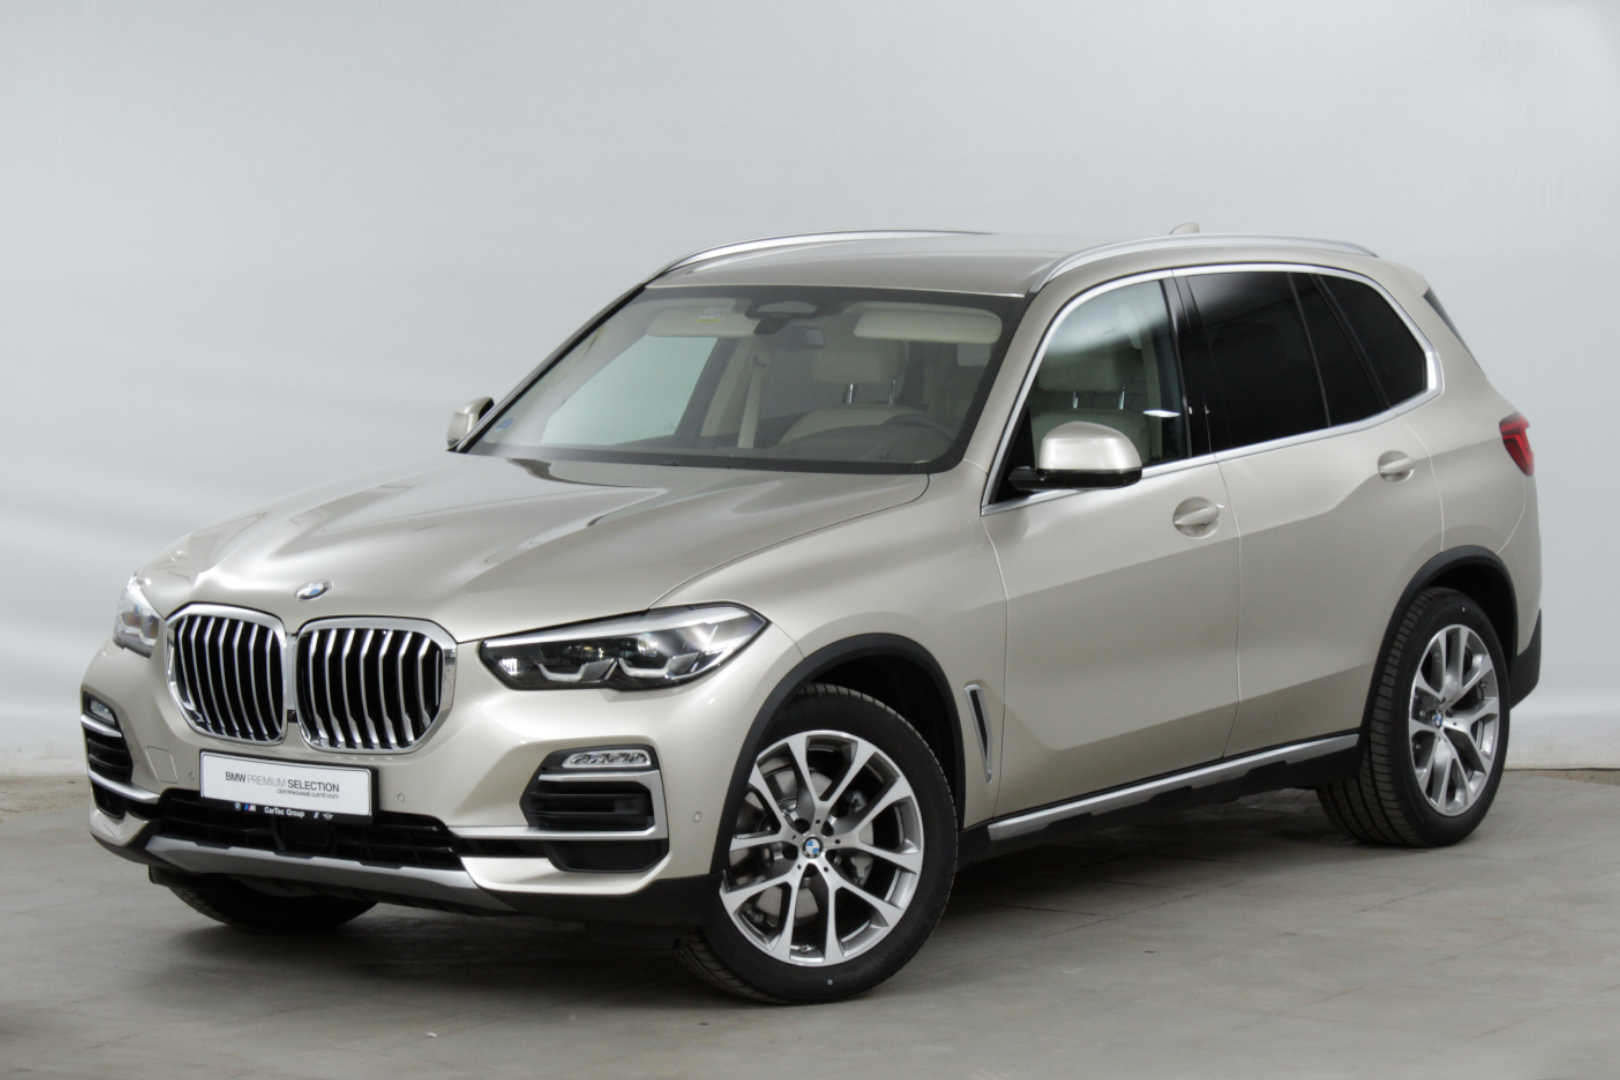 BMW X5 xDrive30d Model xLine